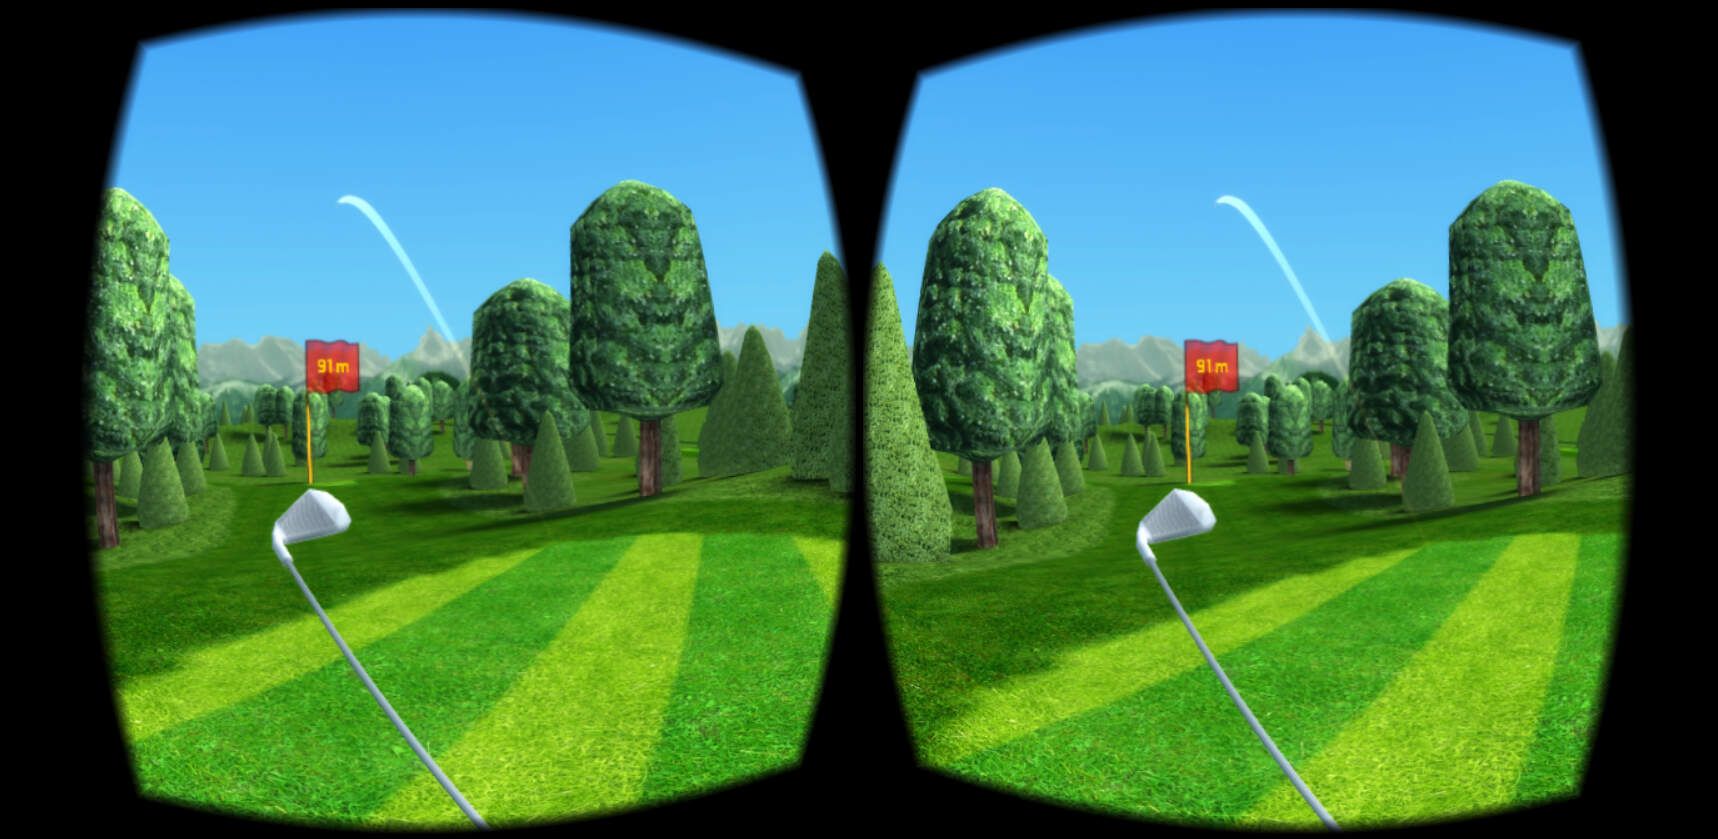 GitHub - UniVR/GolfVR: The first Golf Game for Virtual Reality !